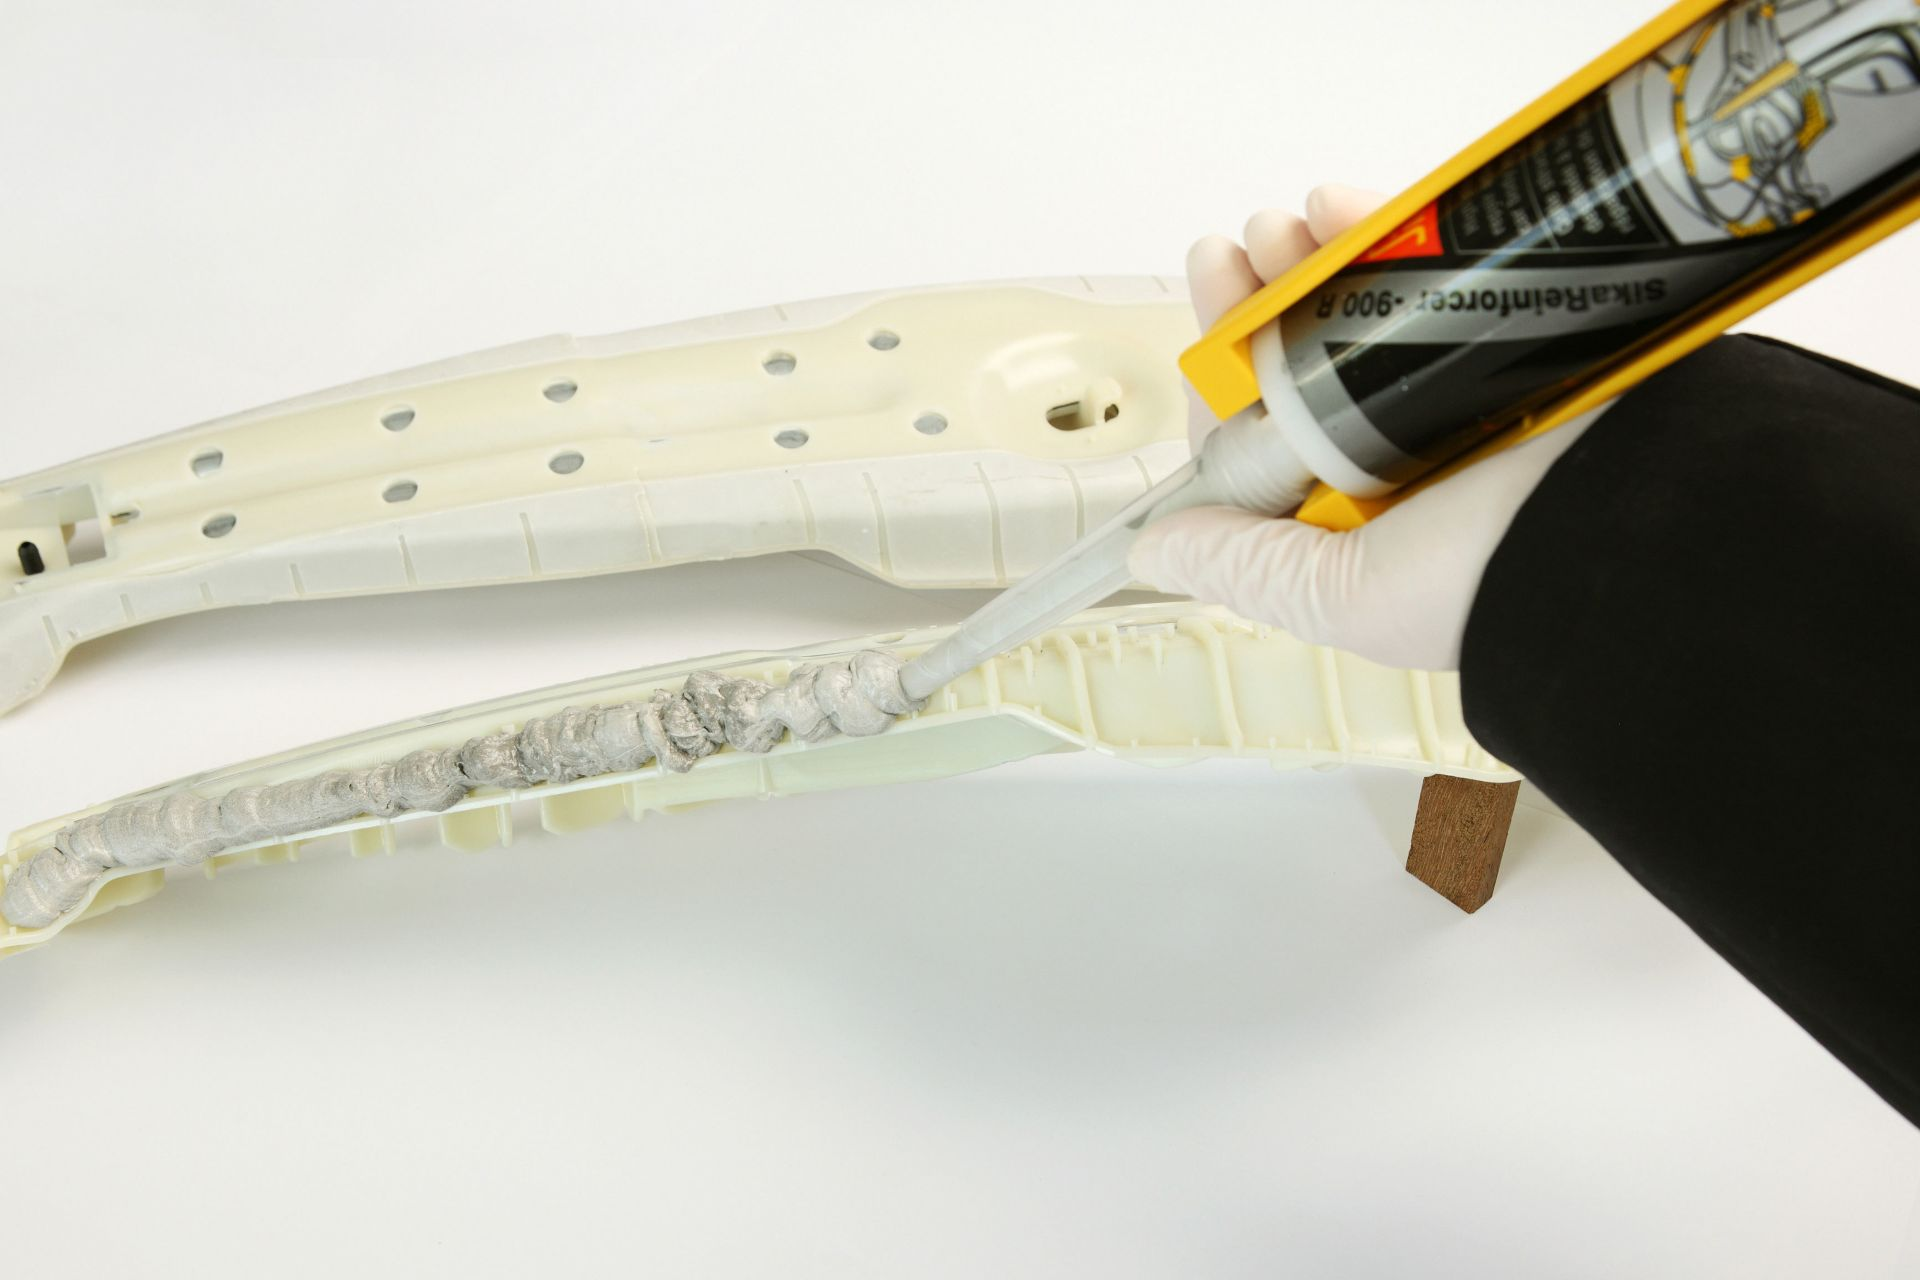 2c Repair adhesive for structural reinforcement application on SikaStructure B-Pillar